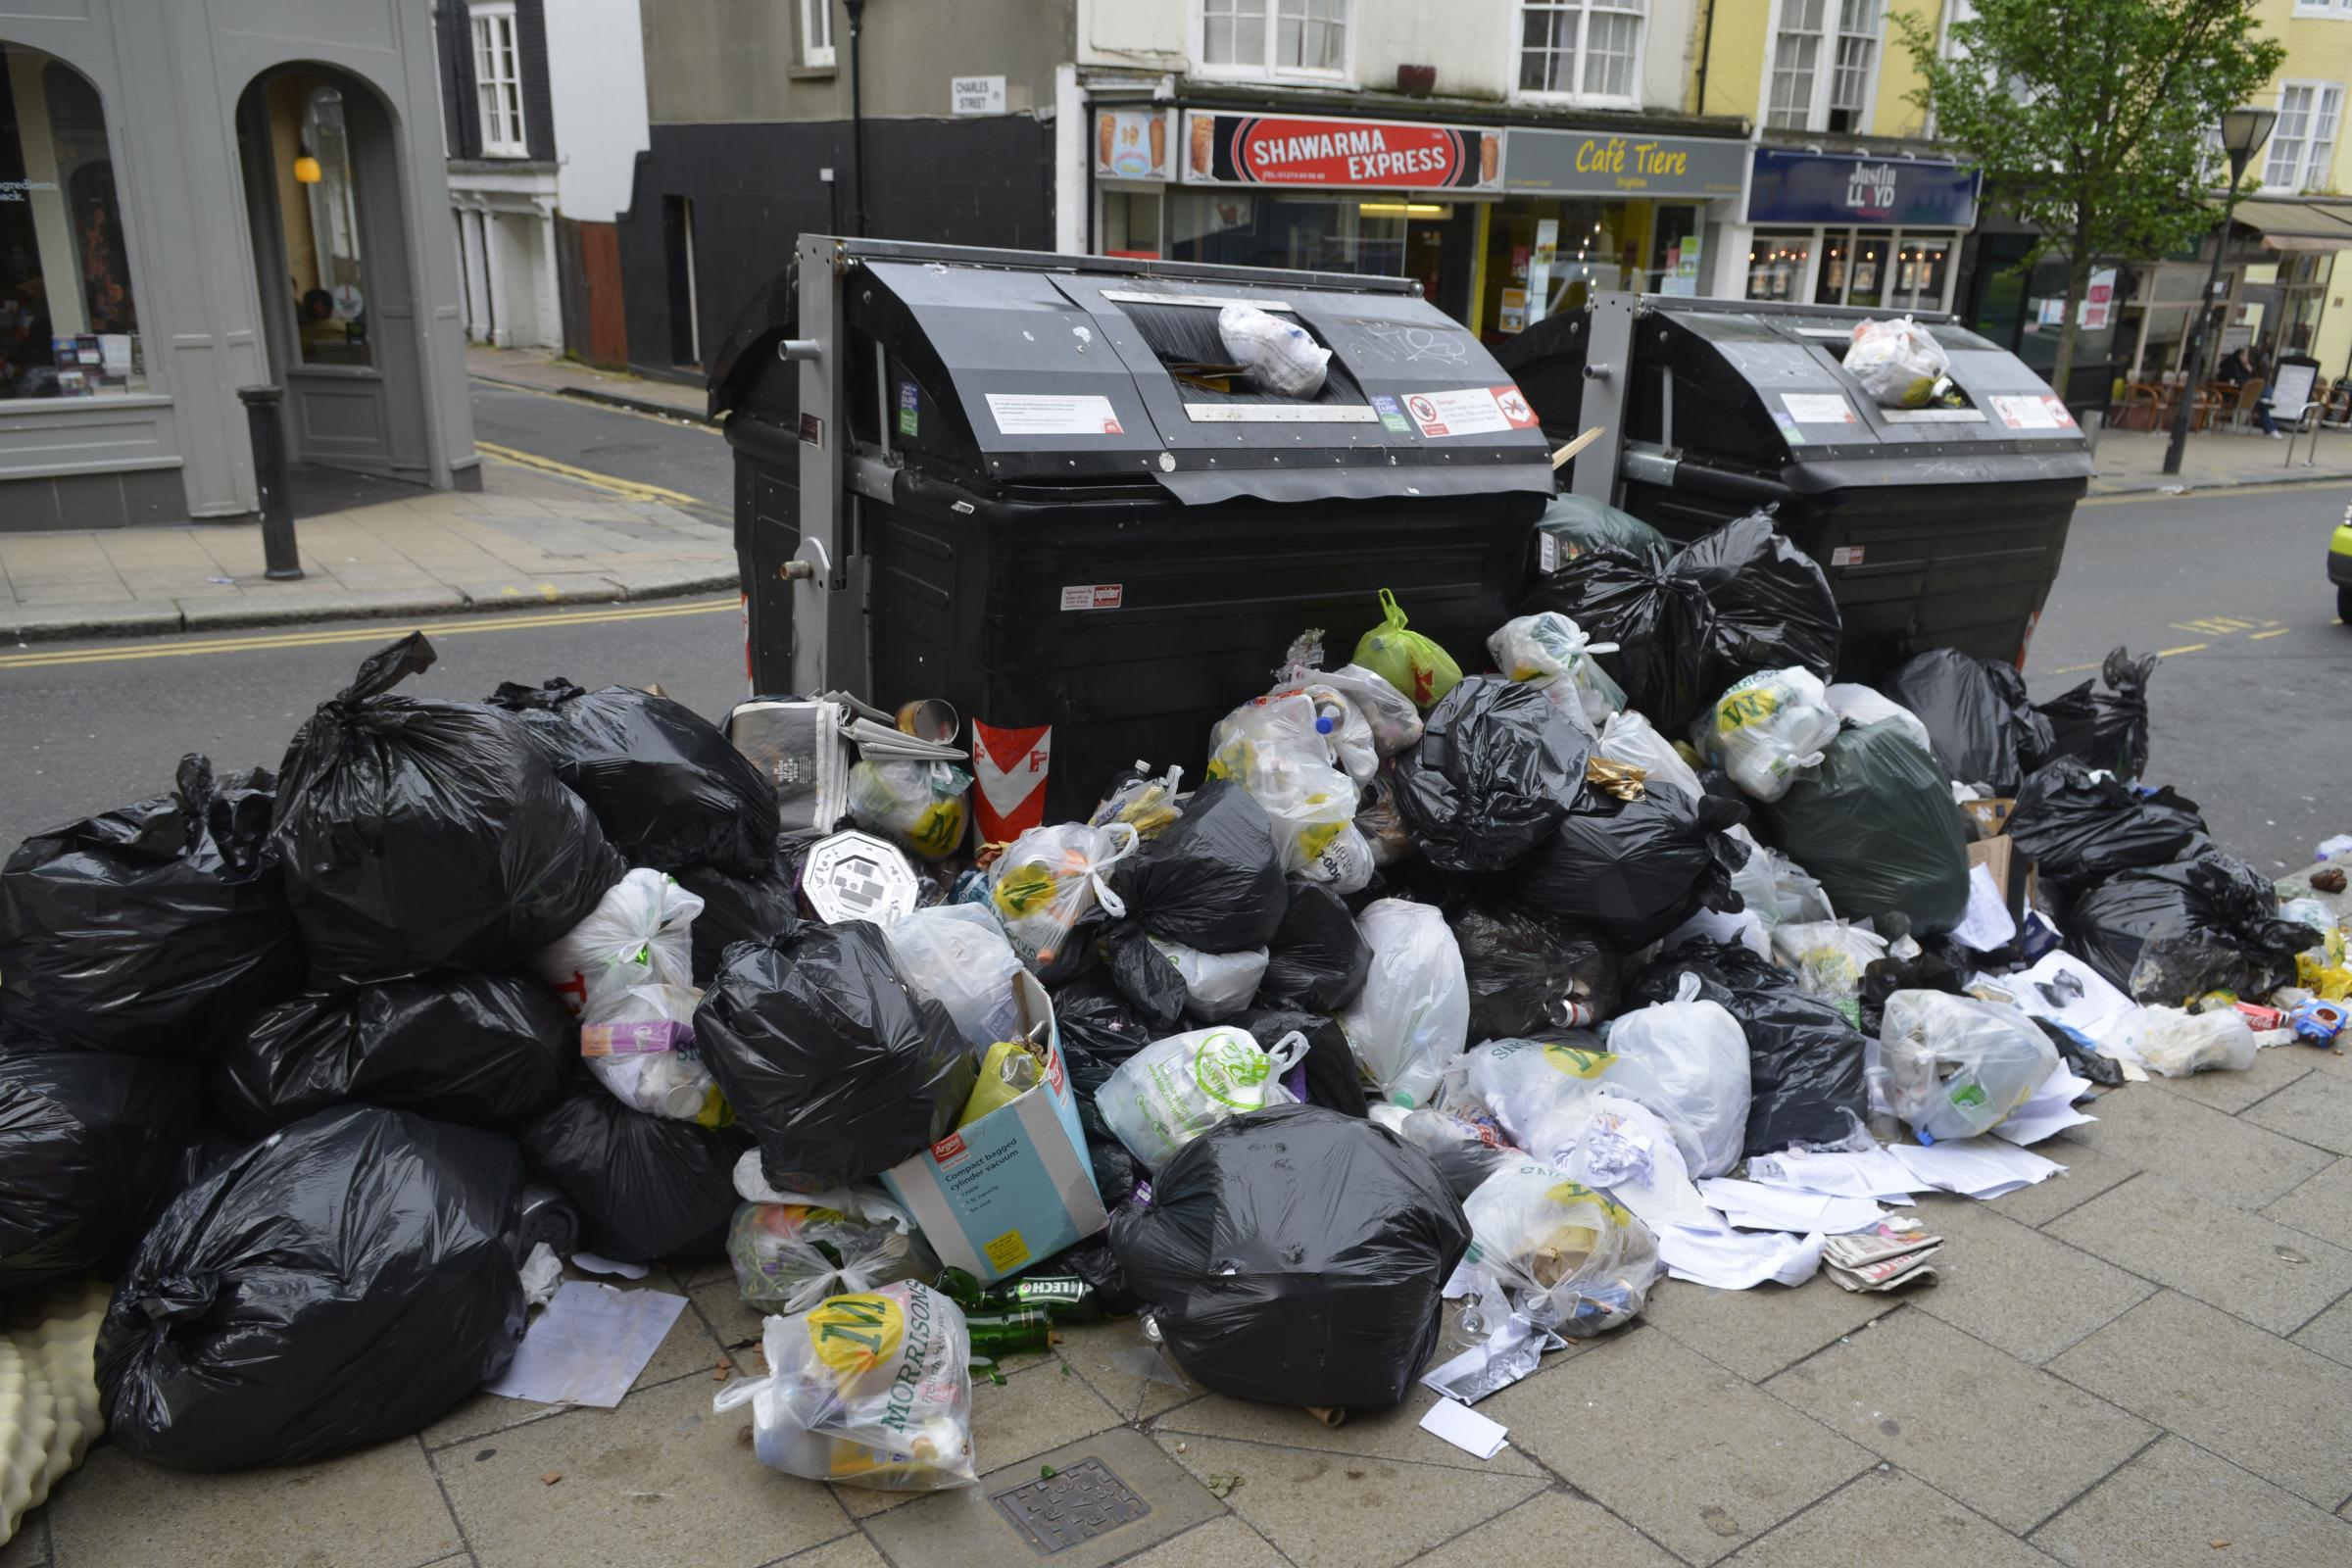 Last year's bin strike saw litter strewn across Brighton and Hove